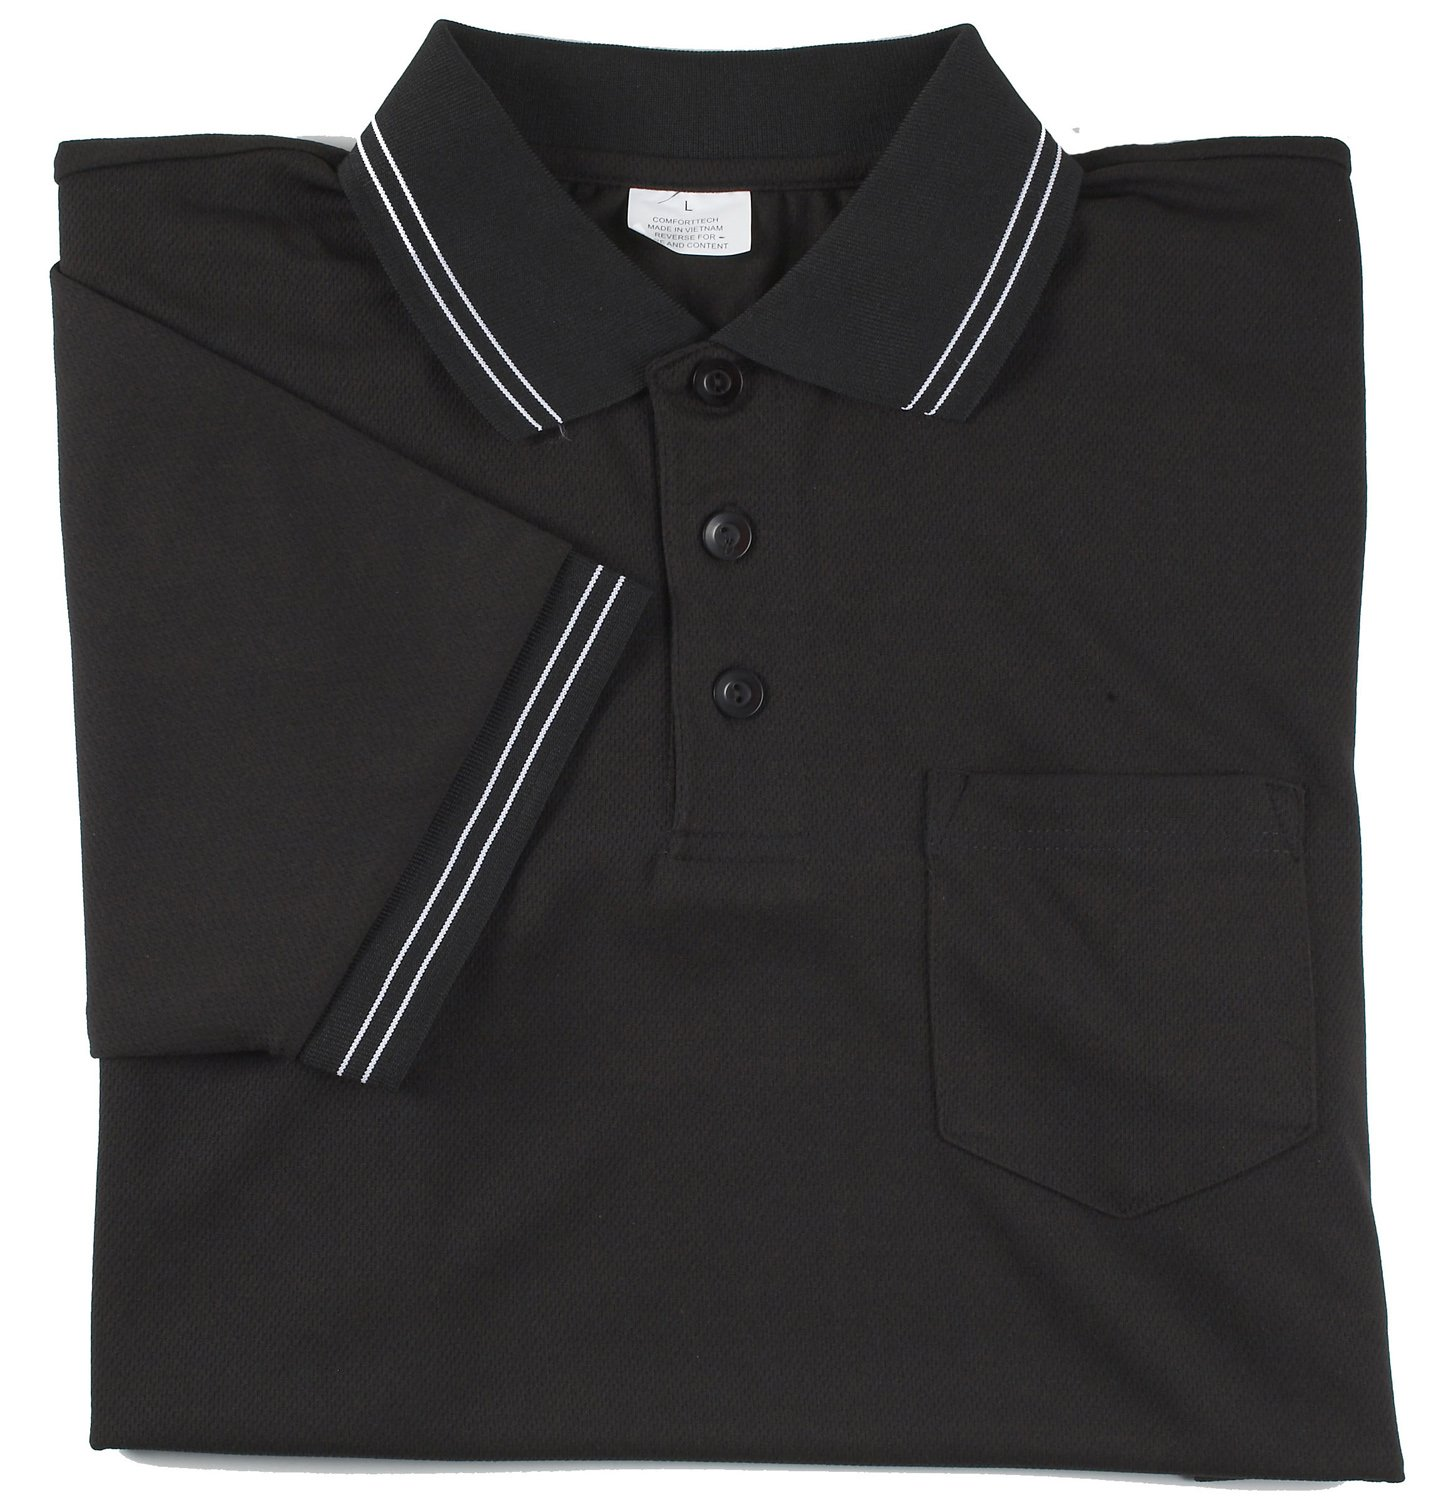 Adams USA Smitty Major League Style Short Sleeve Umpire Shirt with Front Chest Pocket (Black, 4X-Large)